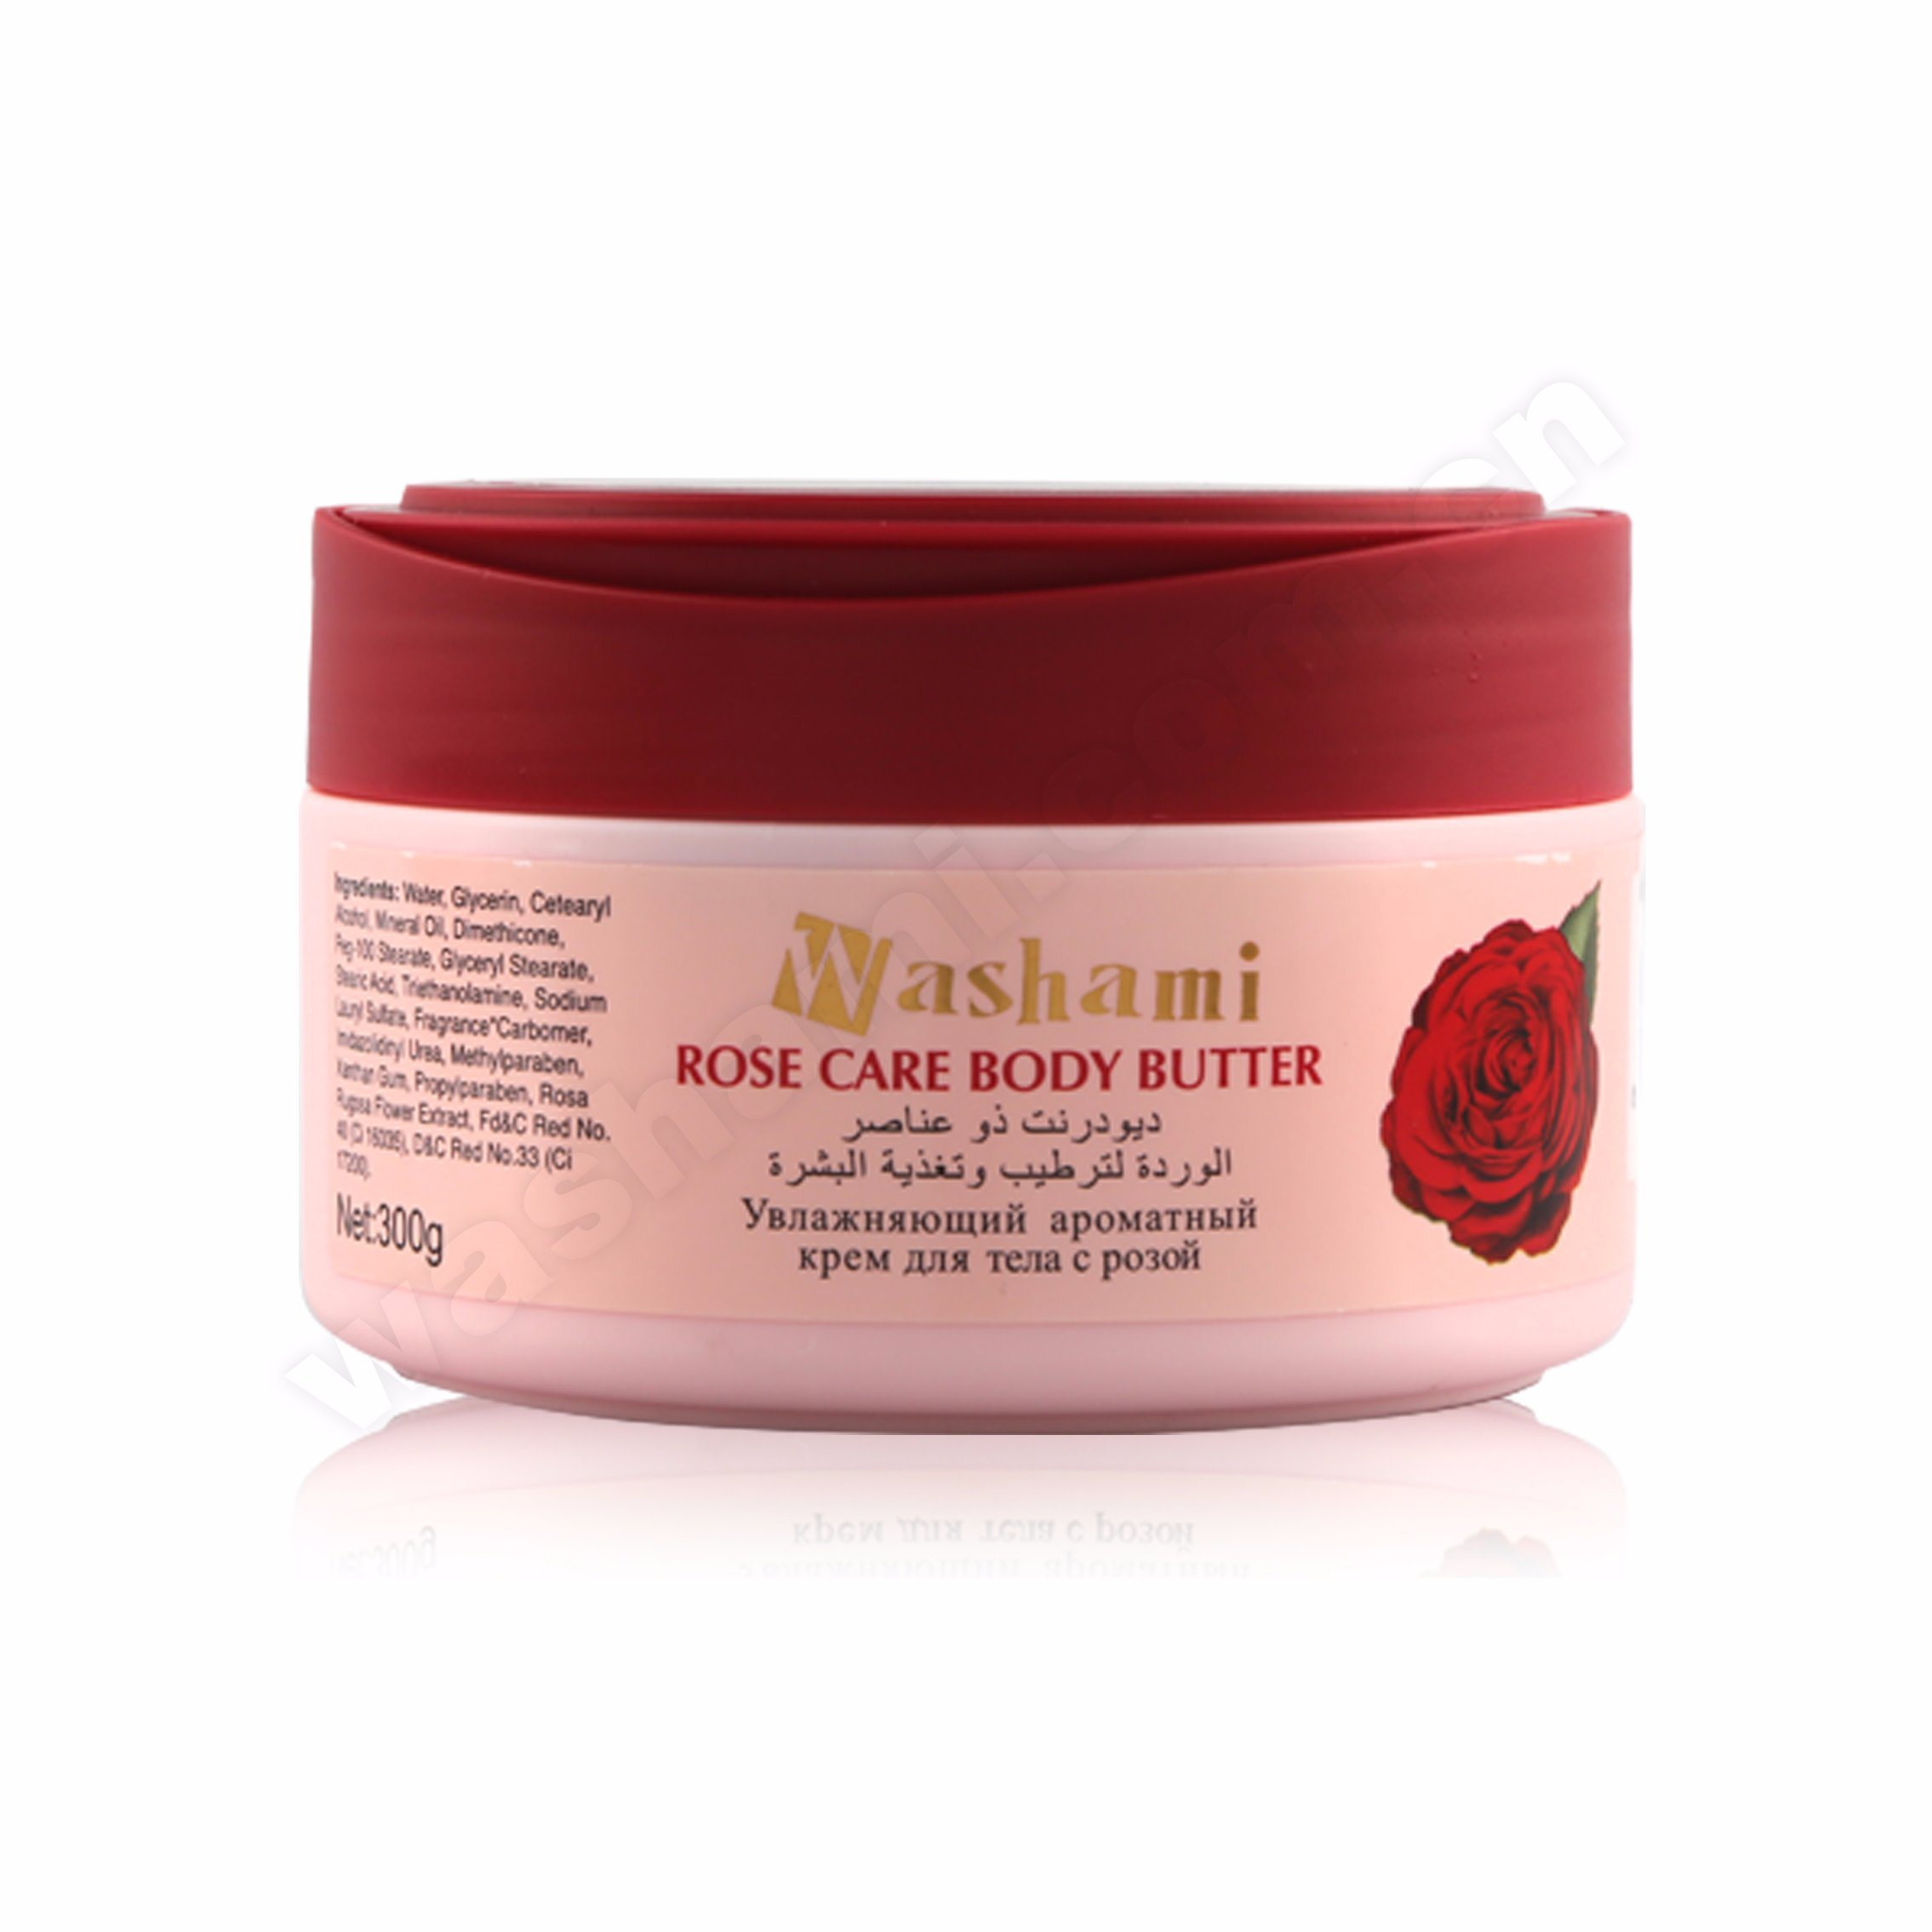 Washami Best Quality Natuer Essence Body Butter Cream pictures & photos